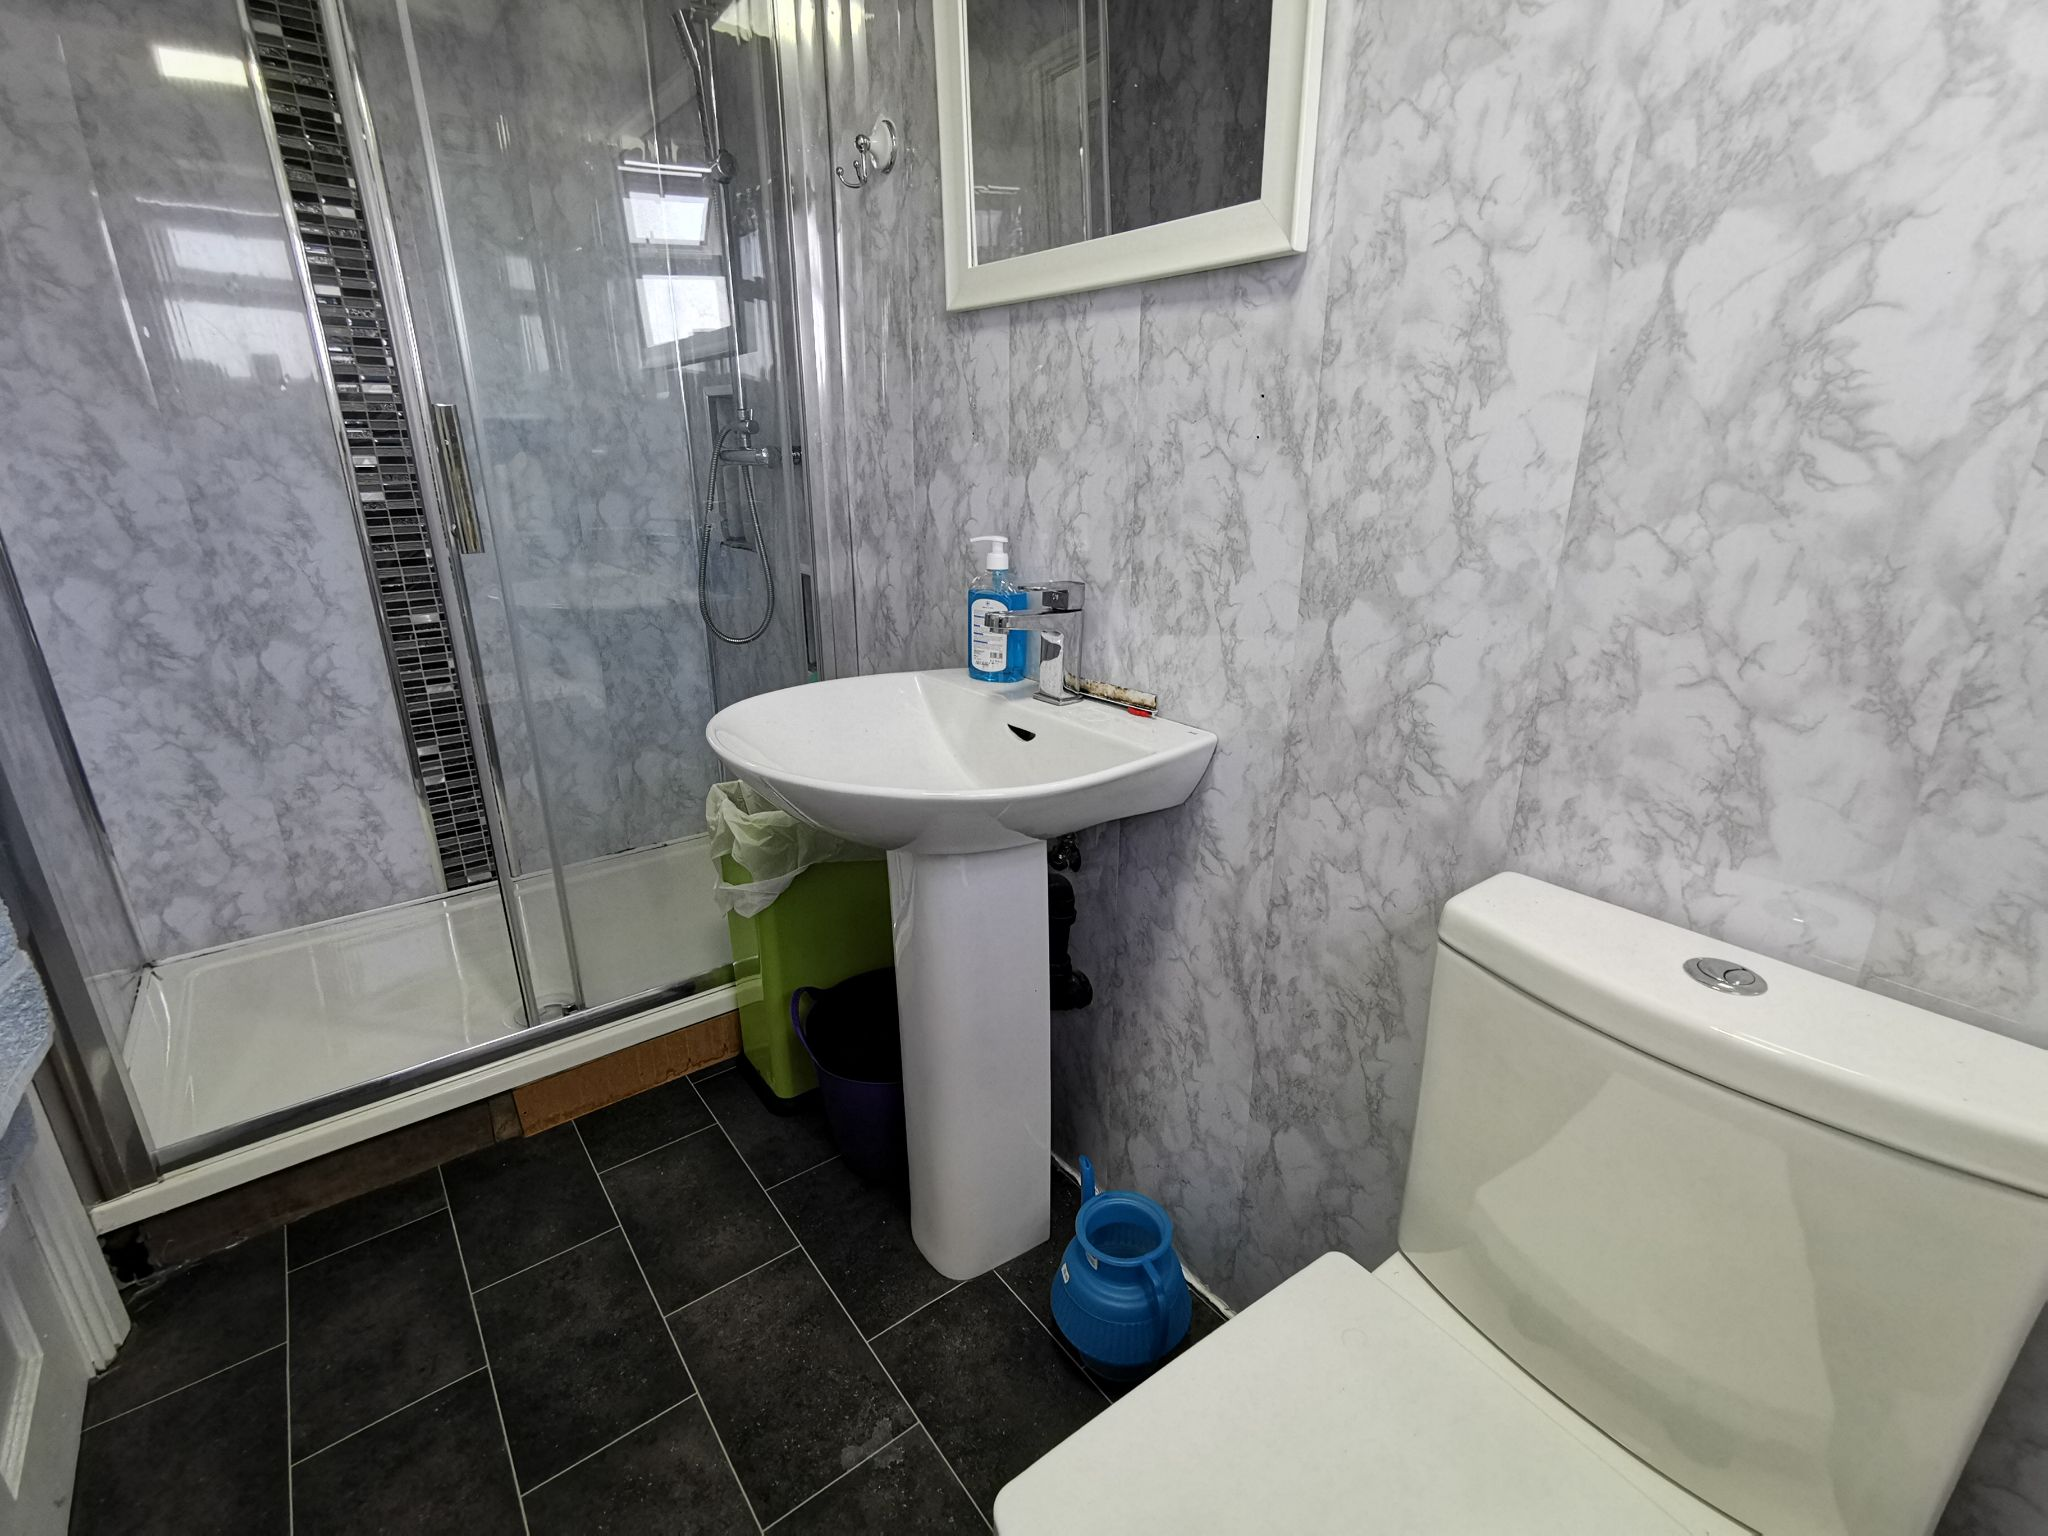 4 bedroom semi-detached house SSTC in Bradford - Photograph 19.